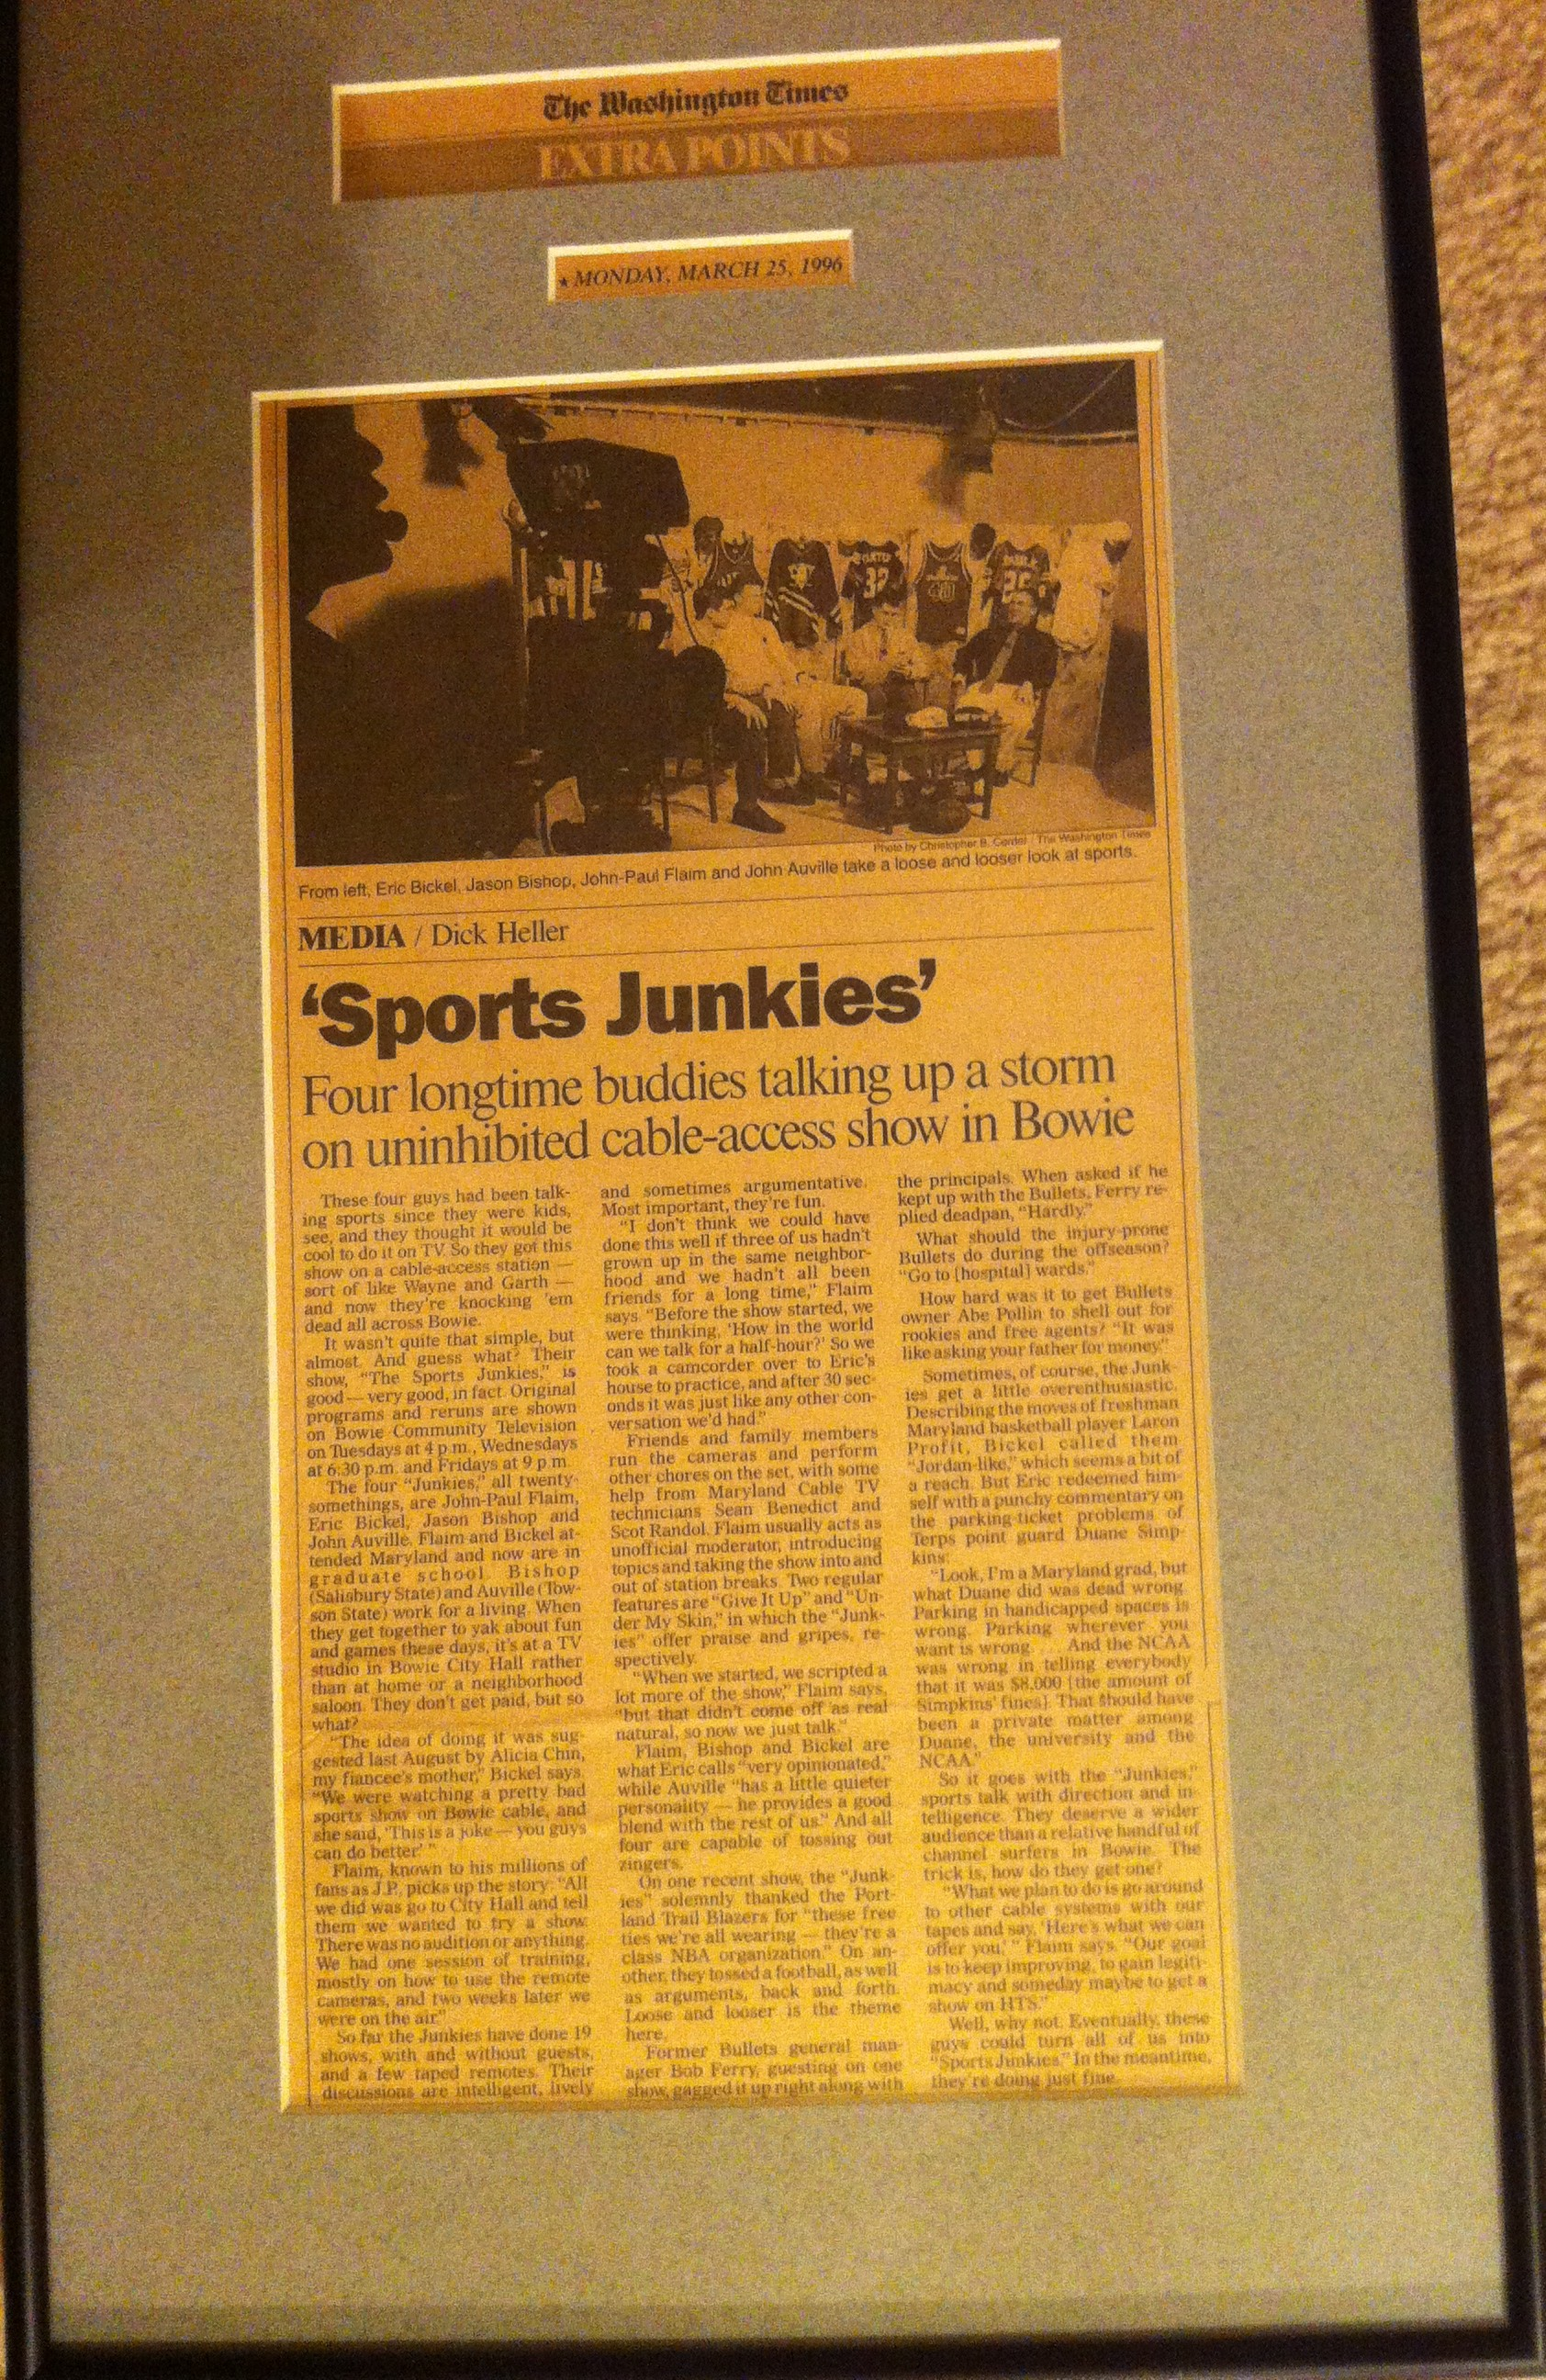 A framed copy of the article written by Dick Heller still hangs in the home of JP Flaim today, nearly 18 years after it first ran in The Washington Times. (Credit: @GlassJoeJP)